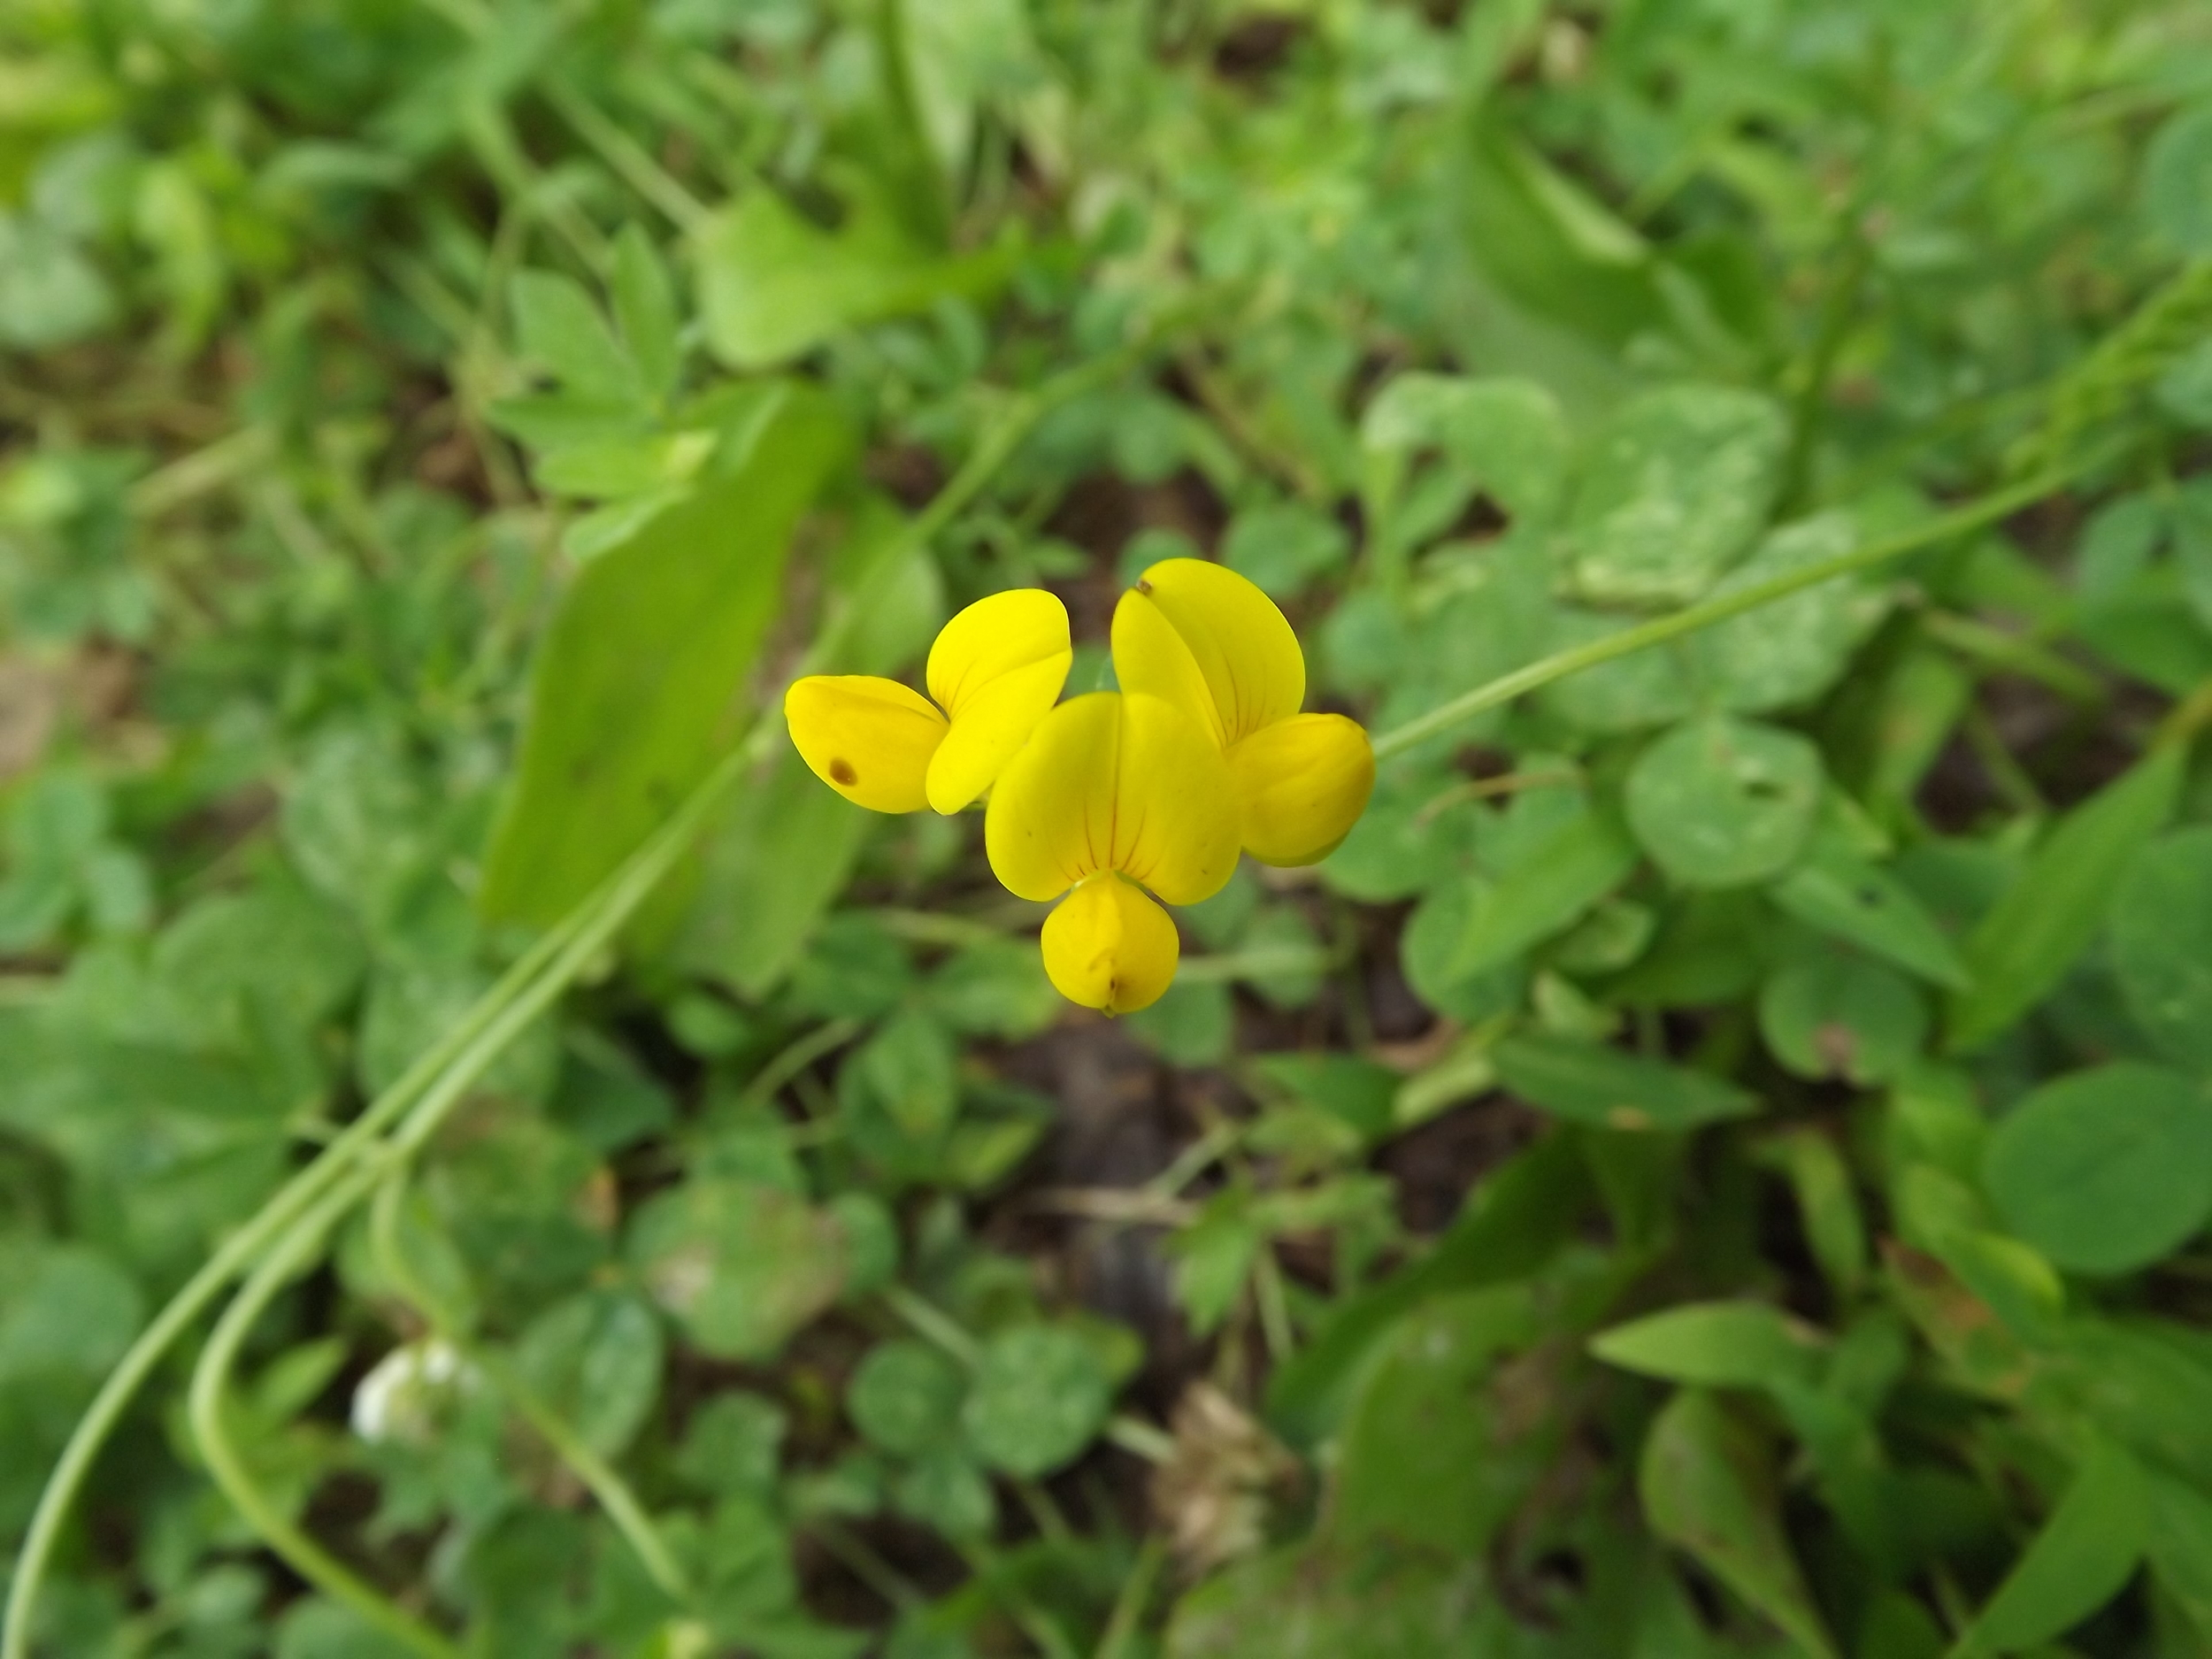 Birds Foot Trefoil ( Lotus corniculatus ) -  Birds Foot Trefoil is not native to our area but its tiny yellow blossoms are pretty interesting looking.  They are also part of the Girl Scout's logo.